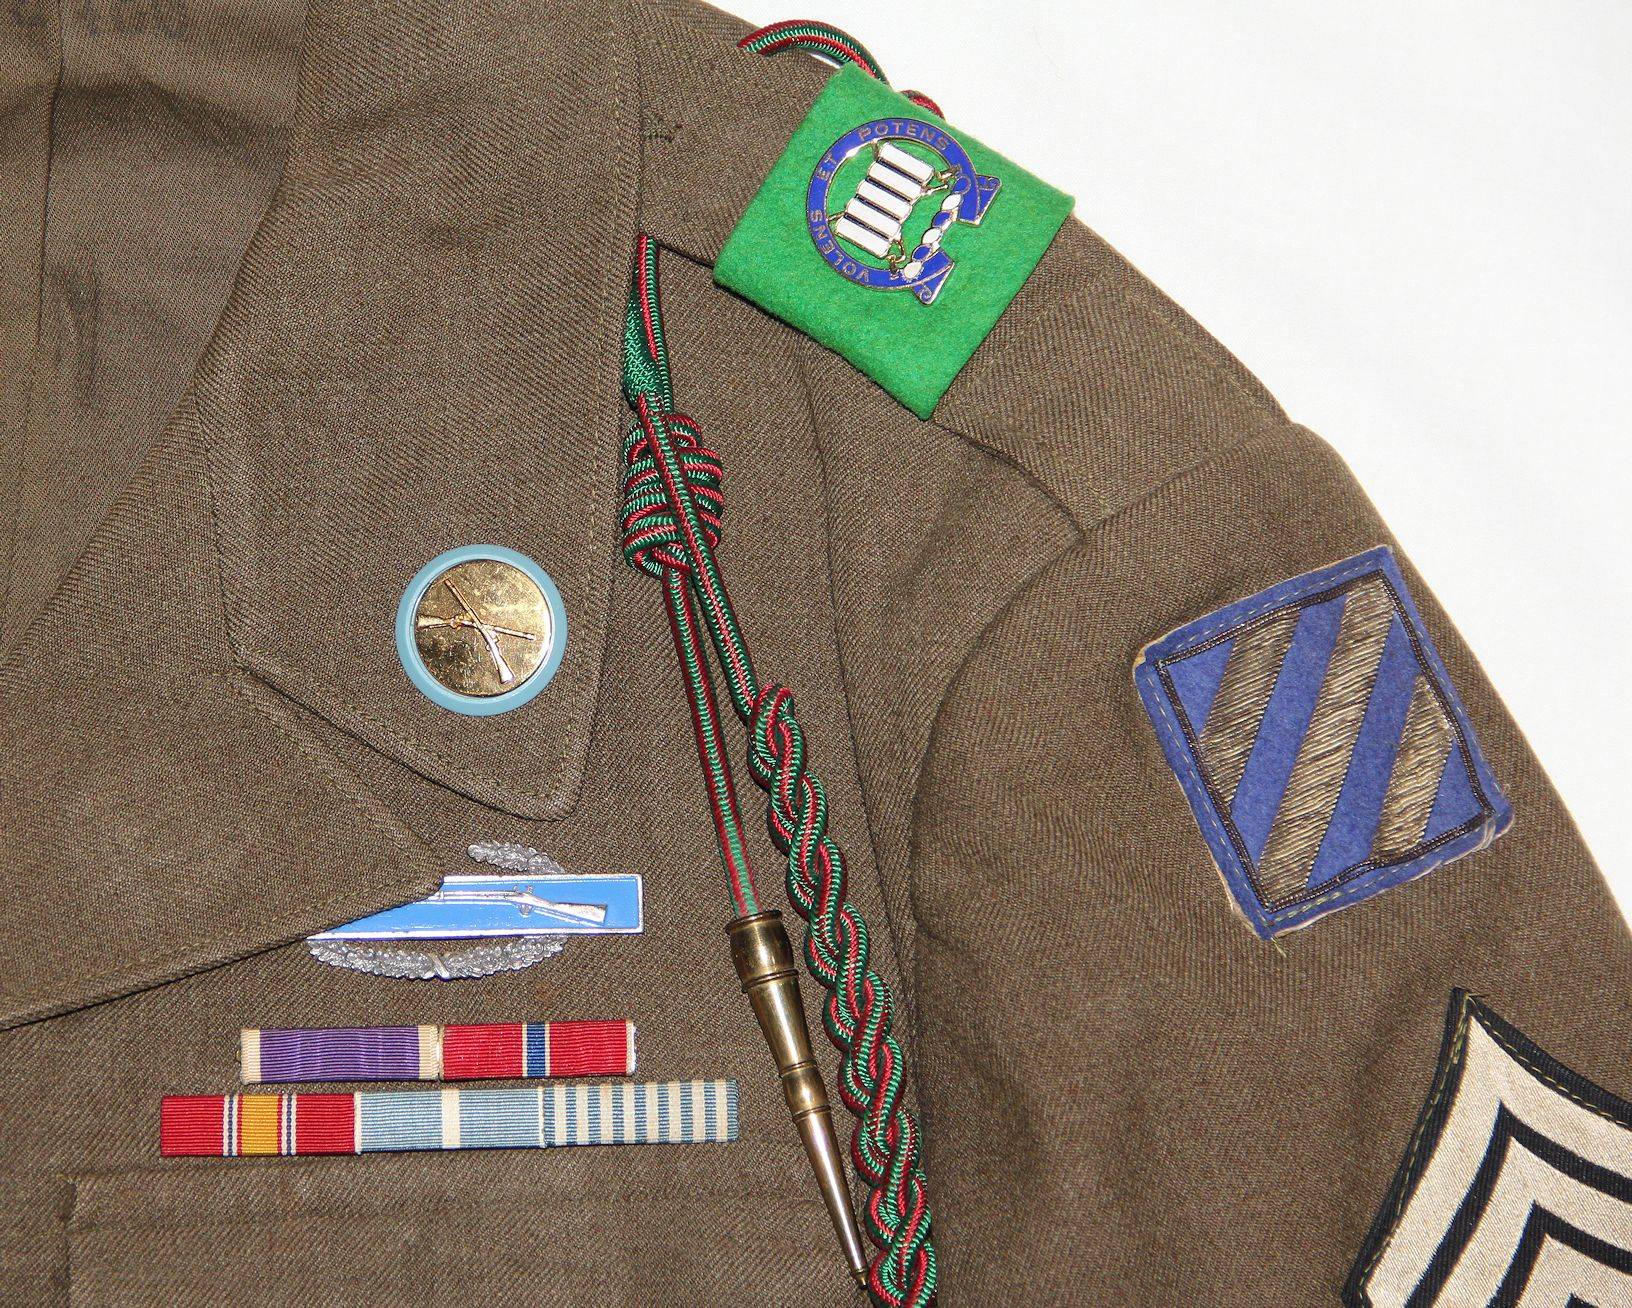 S031  KOREAN WAR 3RD INFANTRY DIVISION IKE JACKET WITH BULLION PATCH